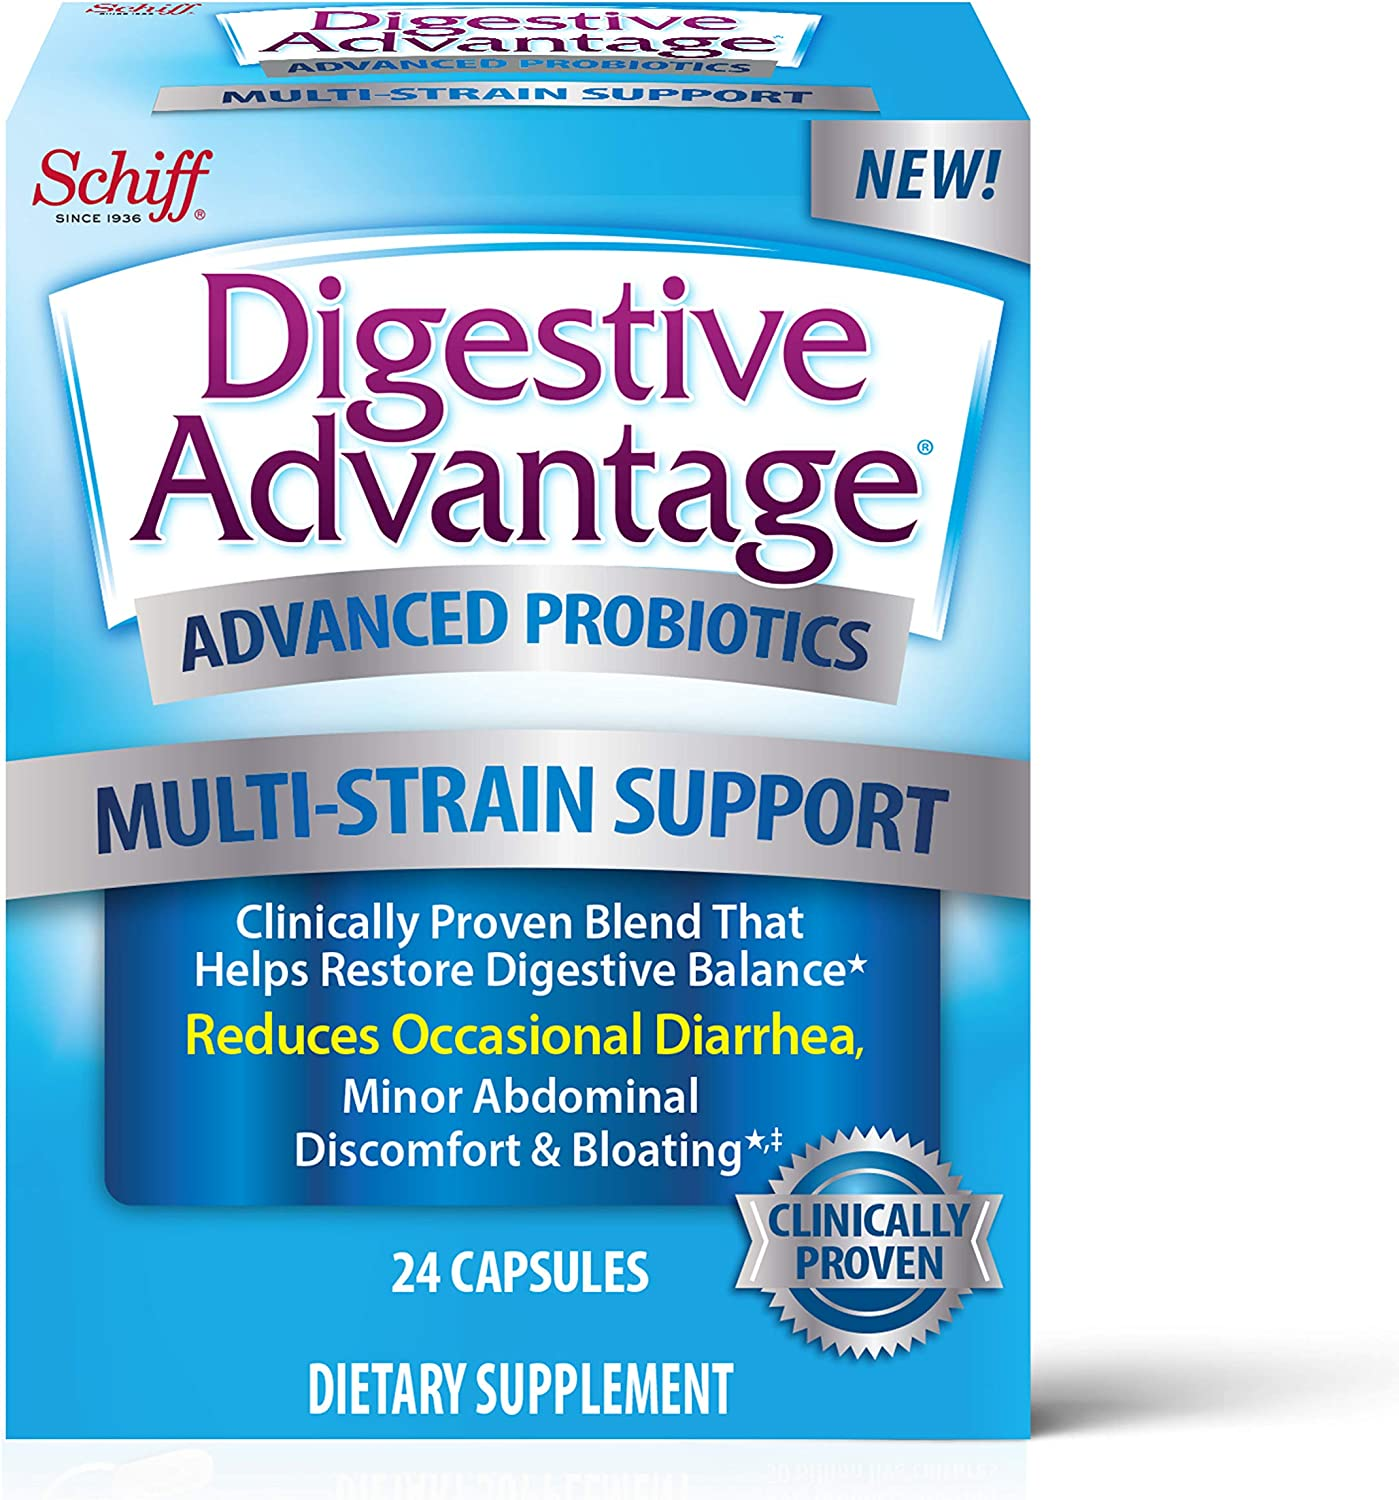 Multi-Strain Support Probiotics Capsules, Digestive Advantage Advanced (24 Count In A Box) - Clinically Proven Blend That Helps Restore Digestive Balance*, Supports Digestive & Immune Health*